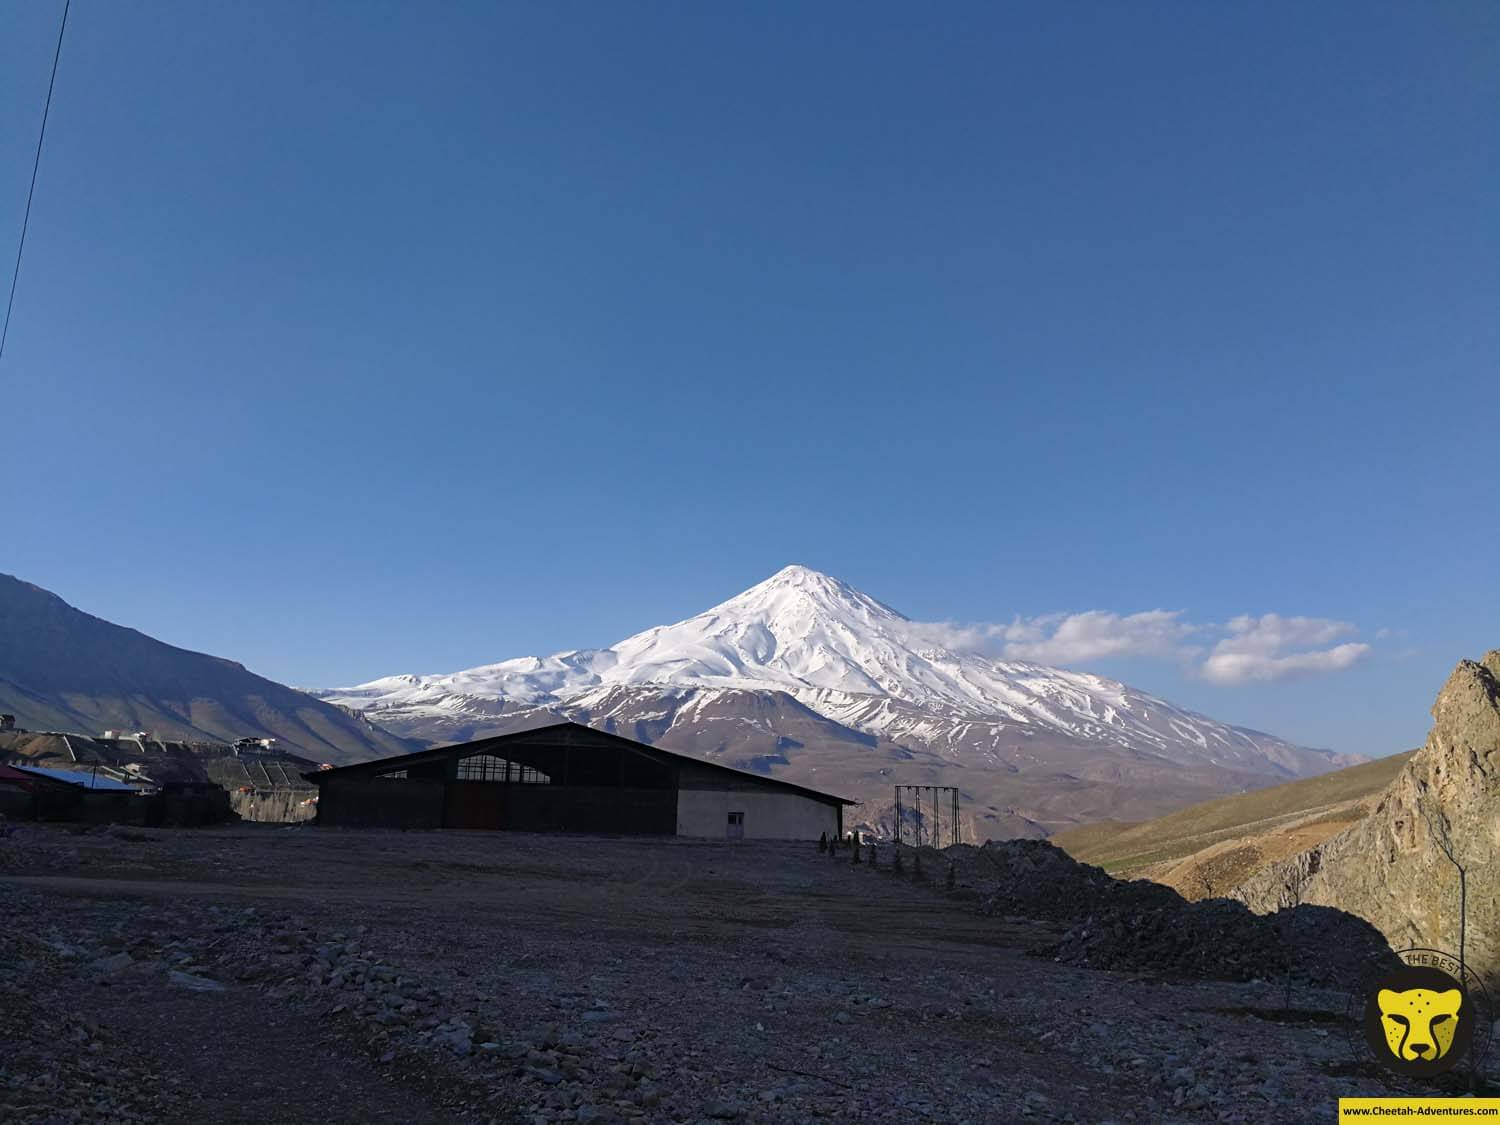 2 Mount Damavand (5610m), Haraz Road, Polur, Damavand Ski Tour